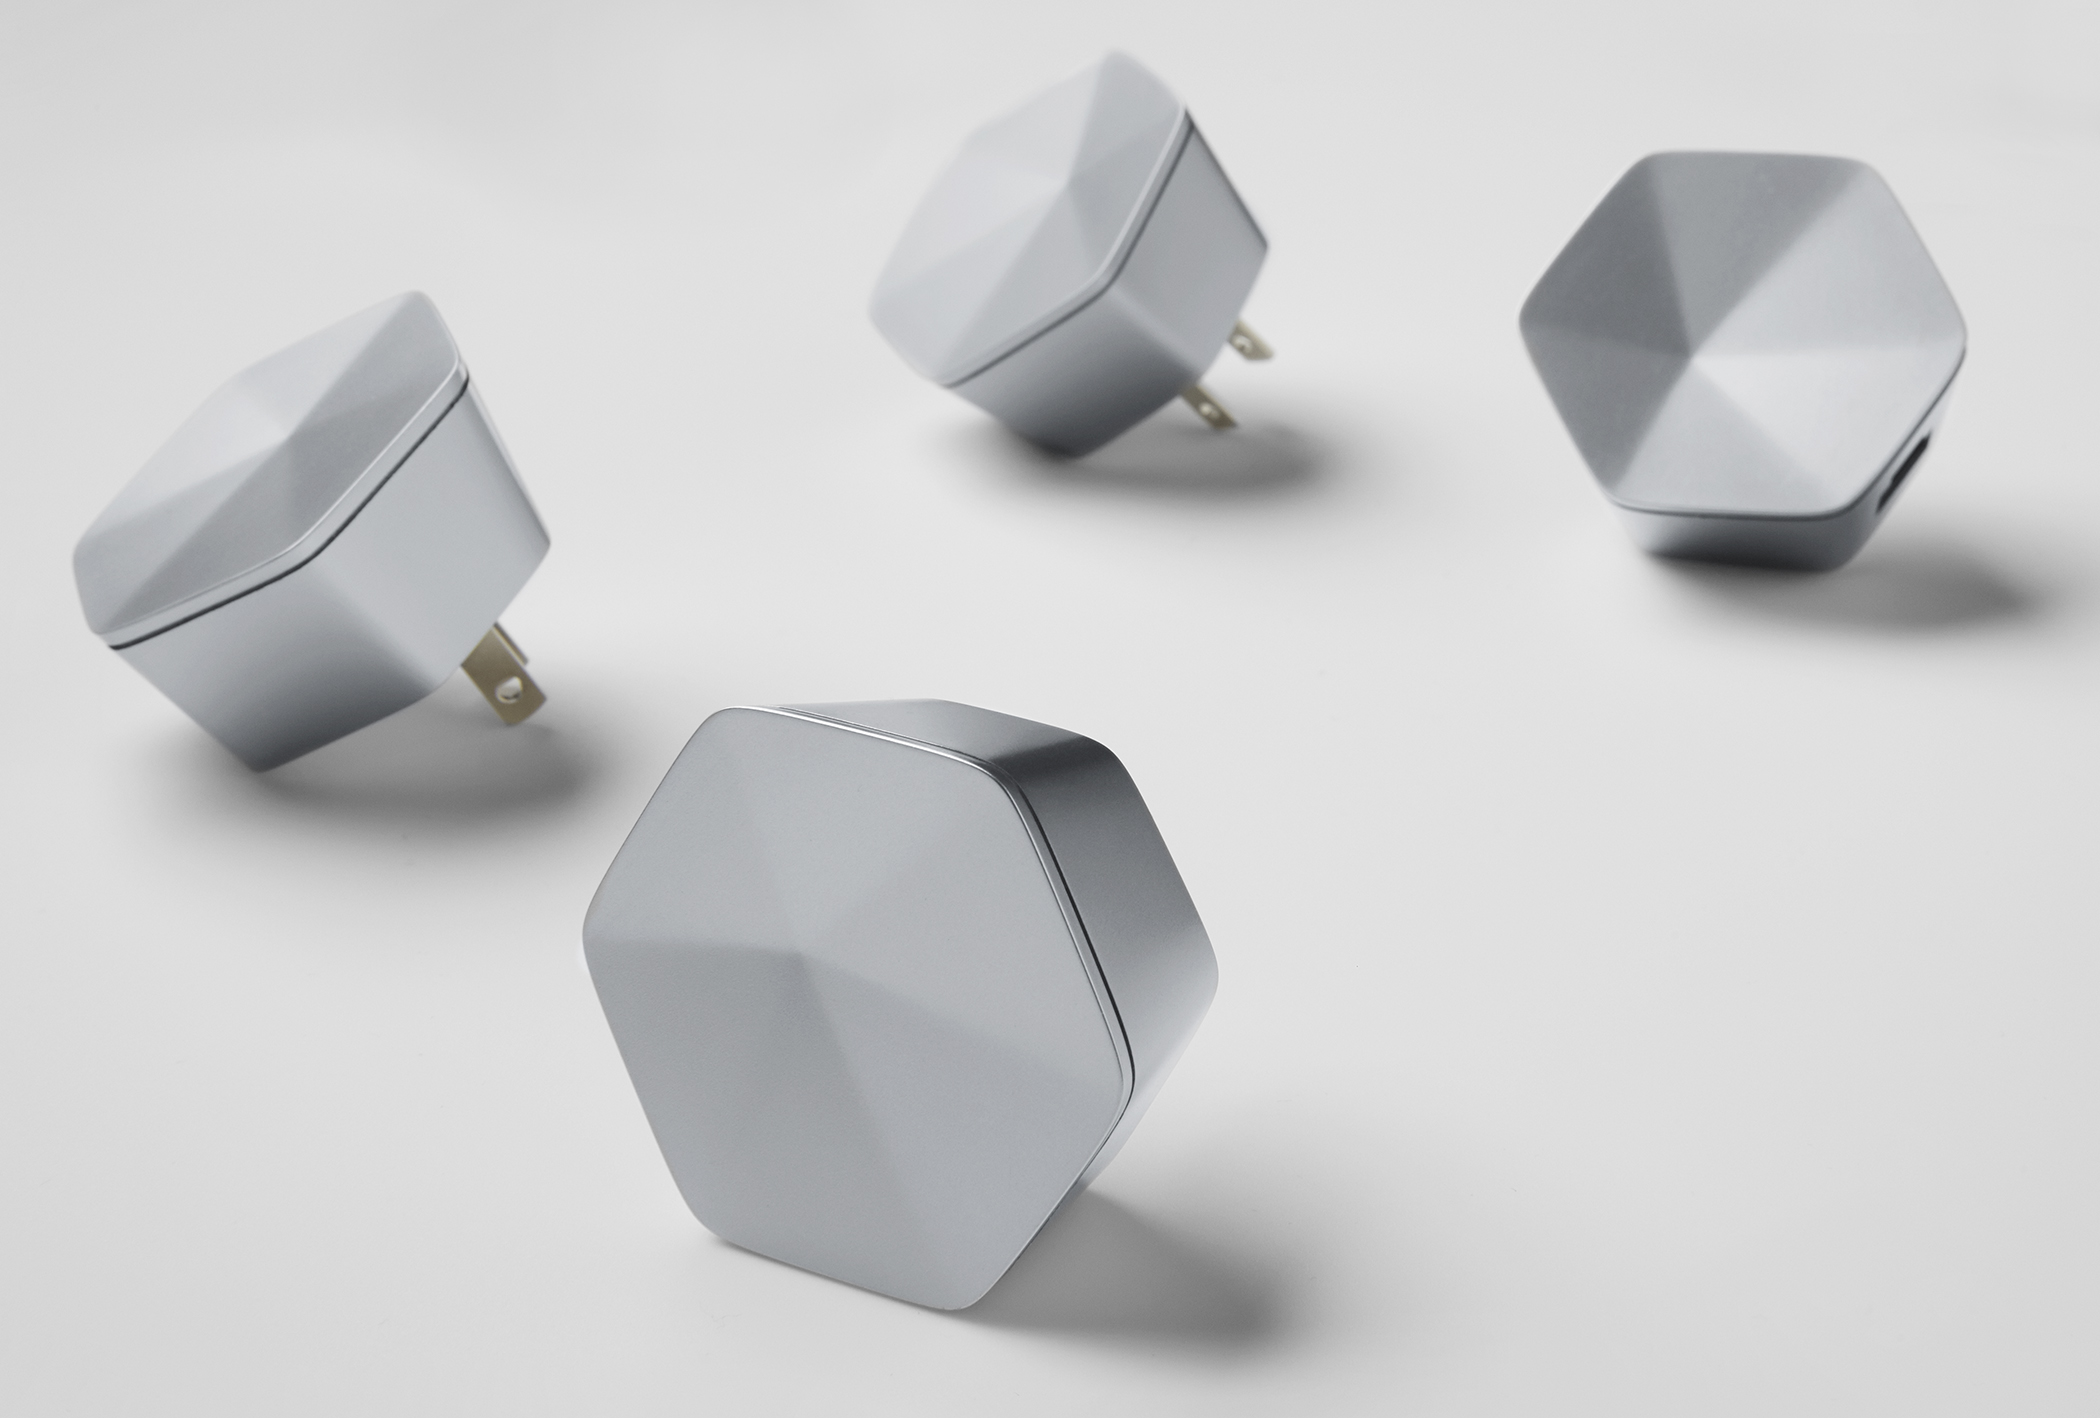 plume pods pods 4 silver plume pods will revolutionize your home wifi network,Home Wifi Network Design